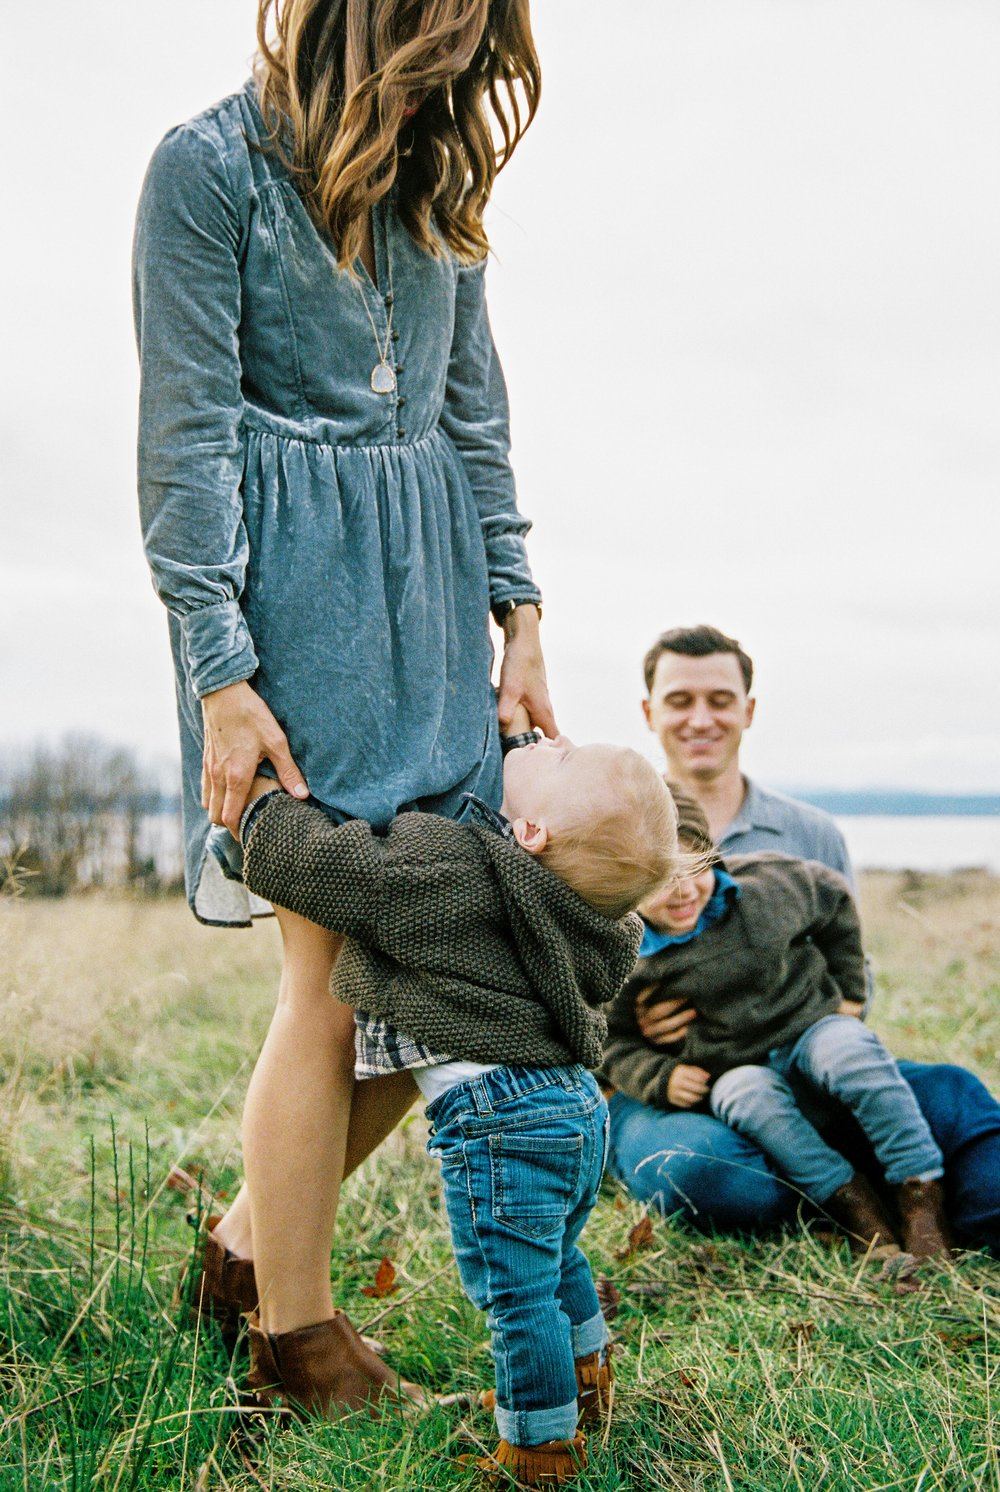 seattle family photographer photo discovery park children child kids kid mom dad brother double exposure film kodak portra 400 35mm pudget sound most popular top best rated photographer baby one year old